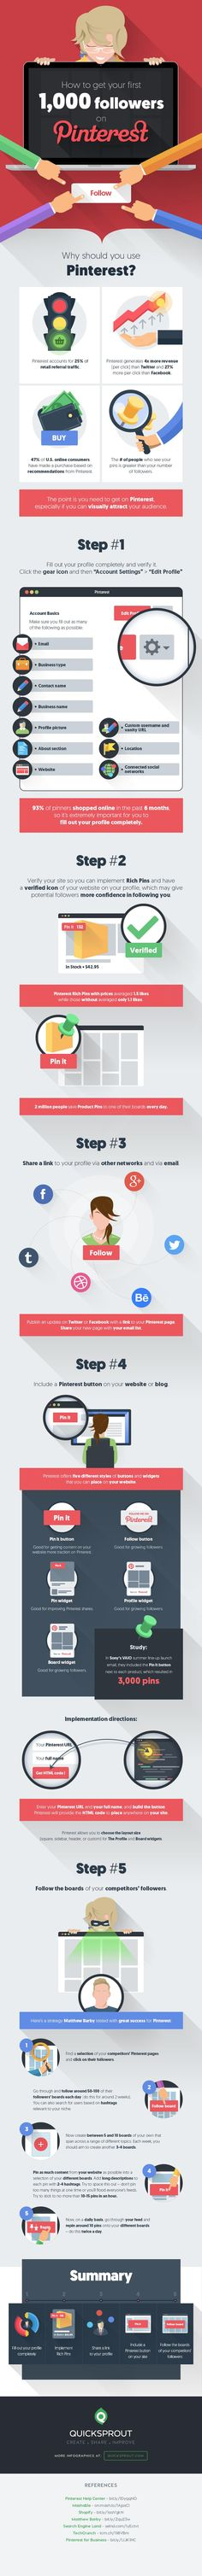 How to get 1000 Followers on Pinterest